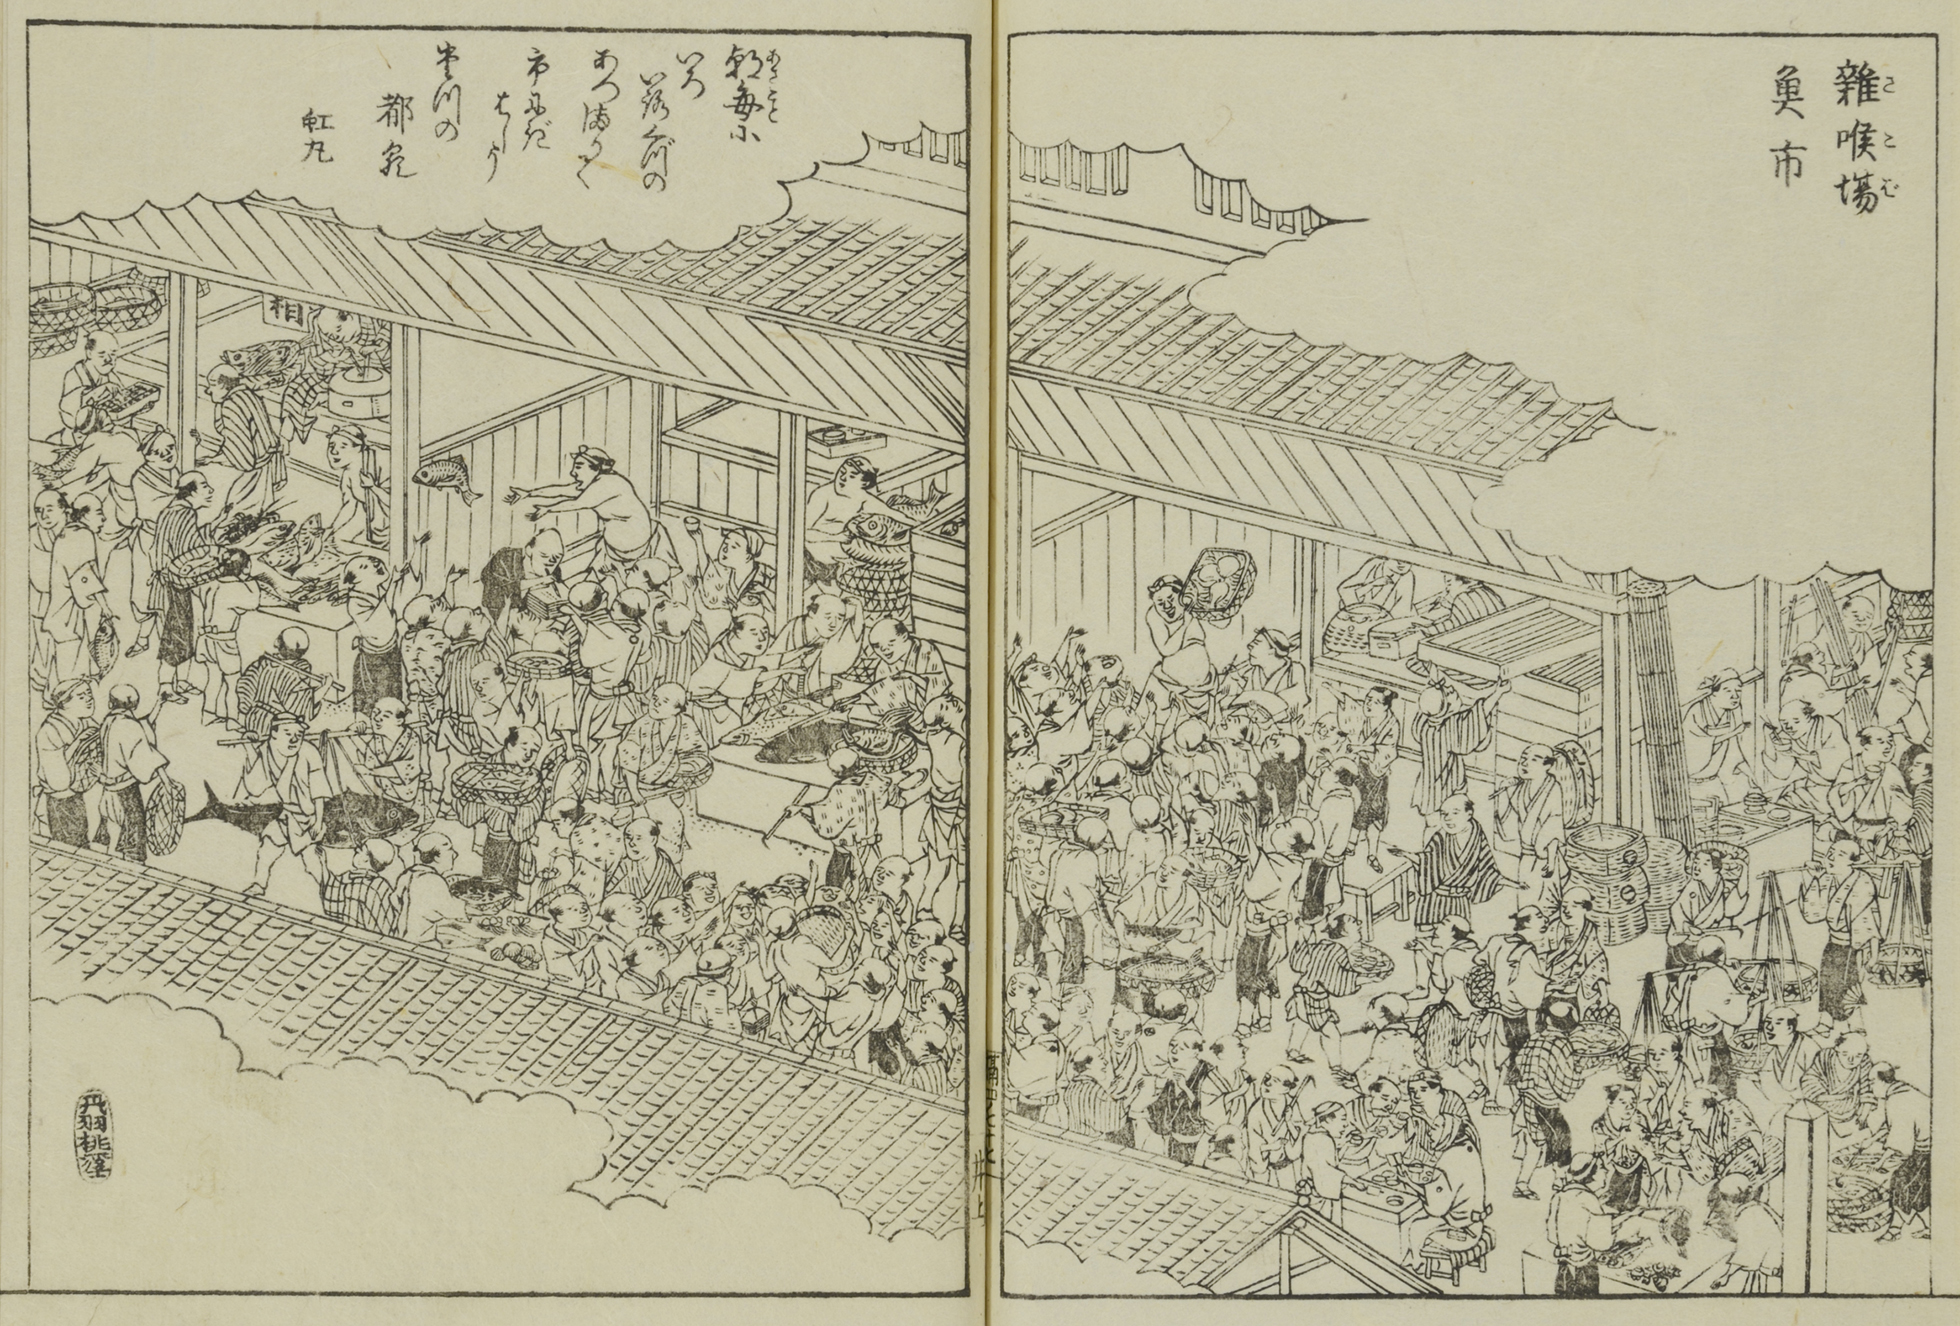 A black and white woodblock print showing a bustling fish market packed with stalls and shoppers.